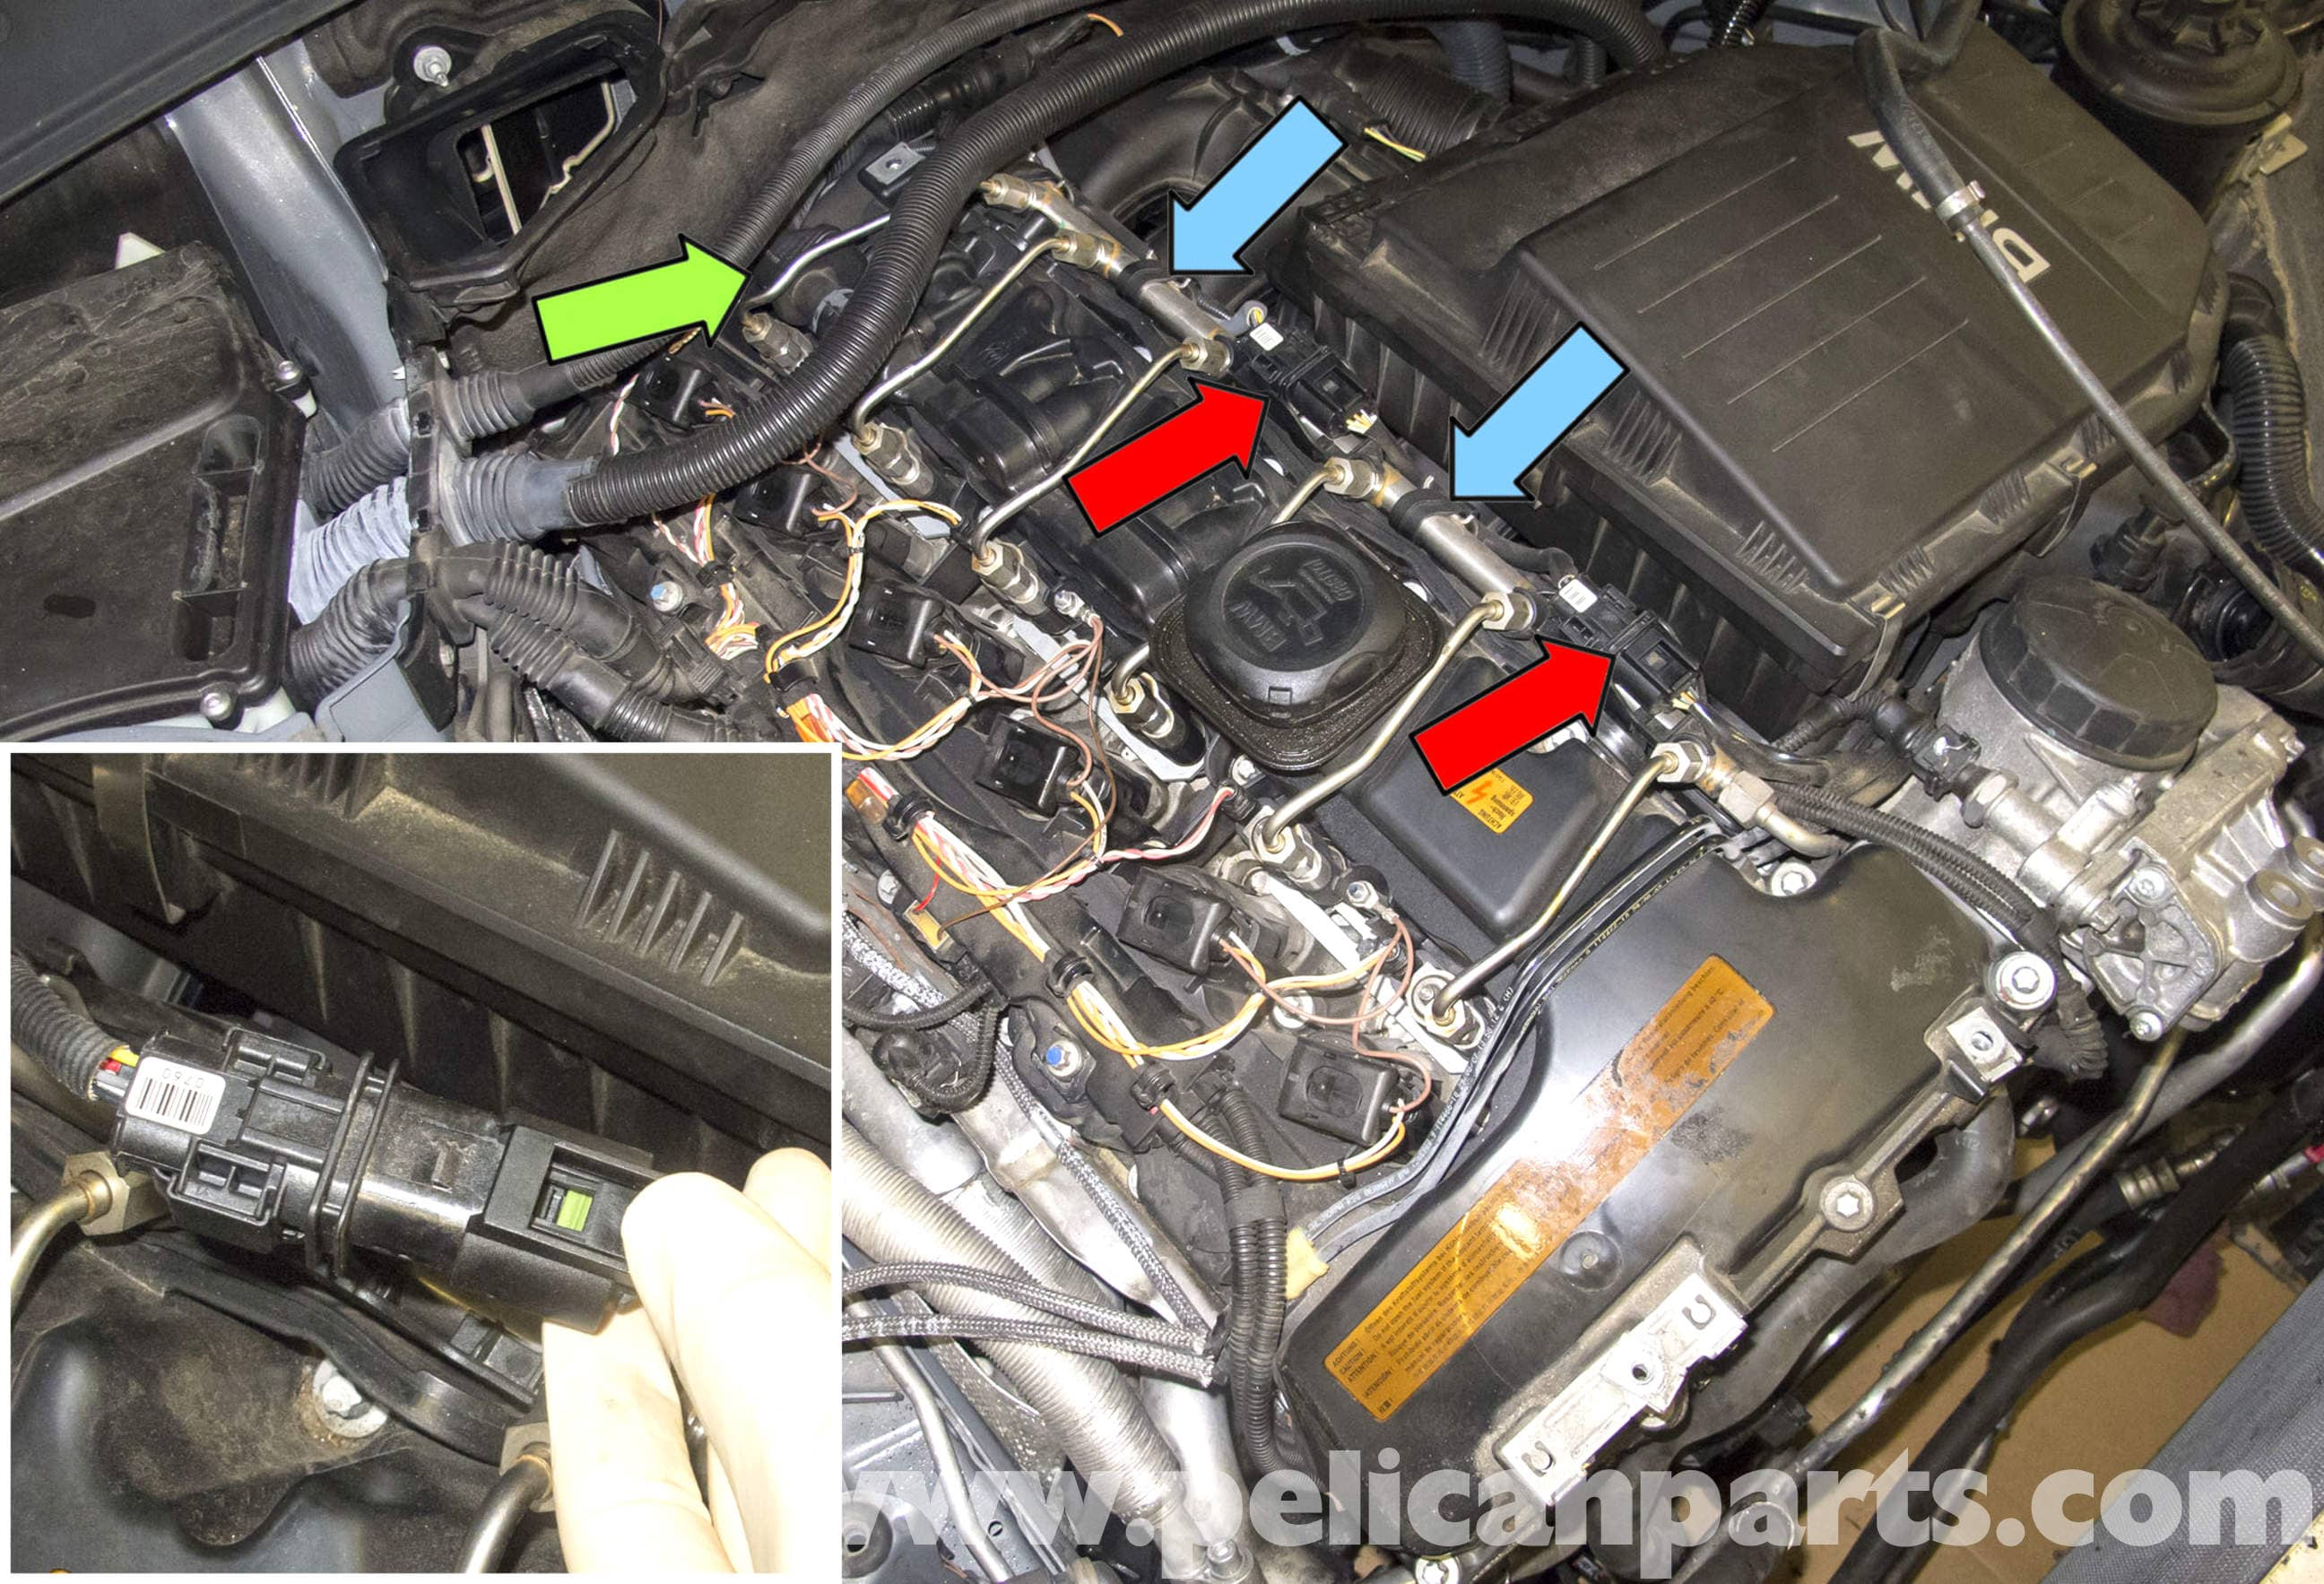 Where The Cylinder Head Temp Sensor On 2013 Ford Fusion Liter as well WATER Radiator Outlet Temperature Sensor Replacing in addition  also Car Dashboard Warning Lights The  plete Guide together with WATER Draining Filling Cooling System. on bmw coolant level low